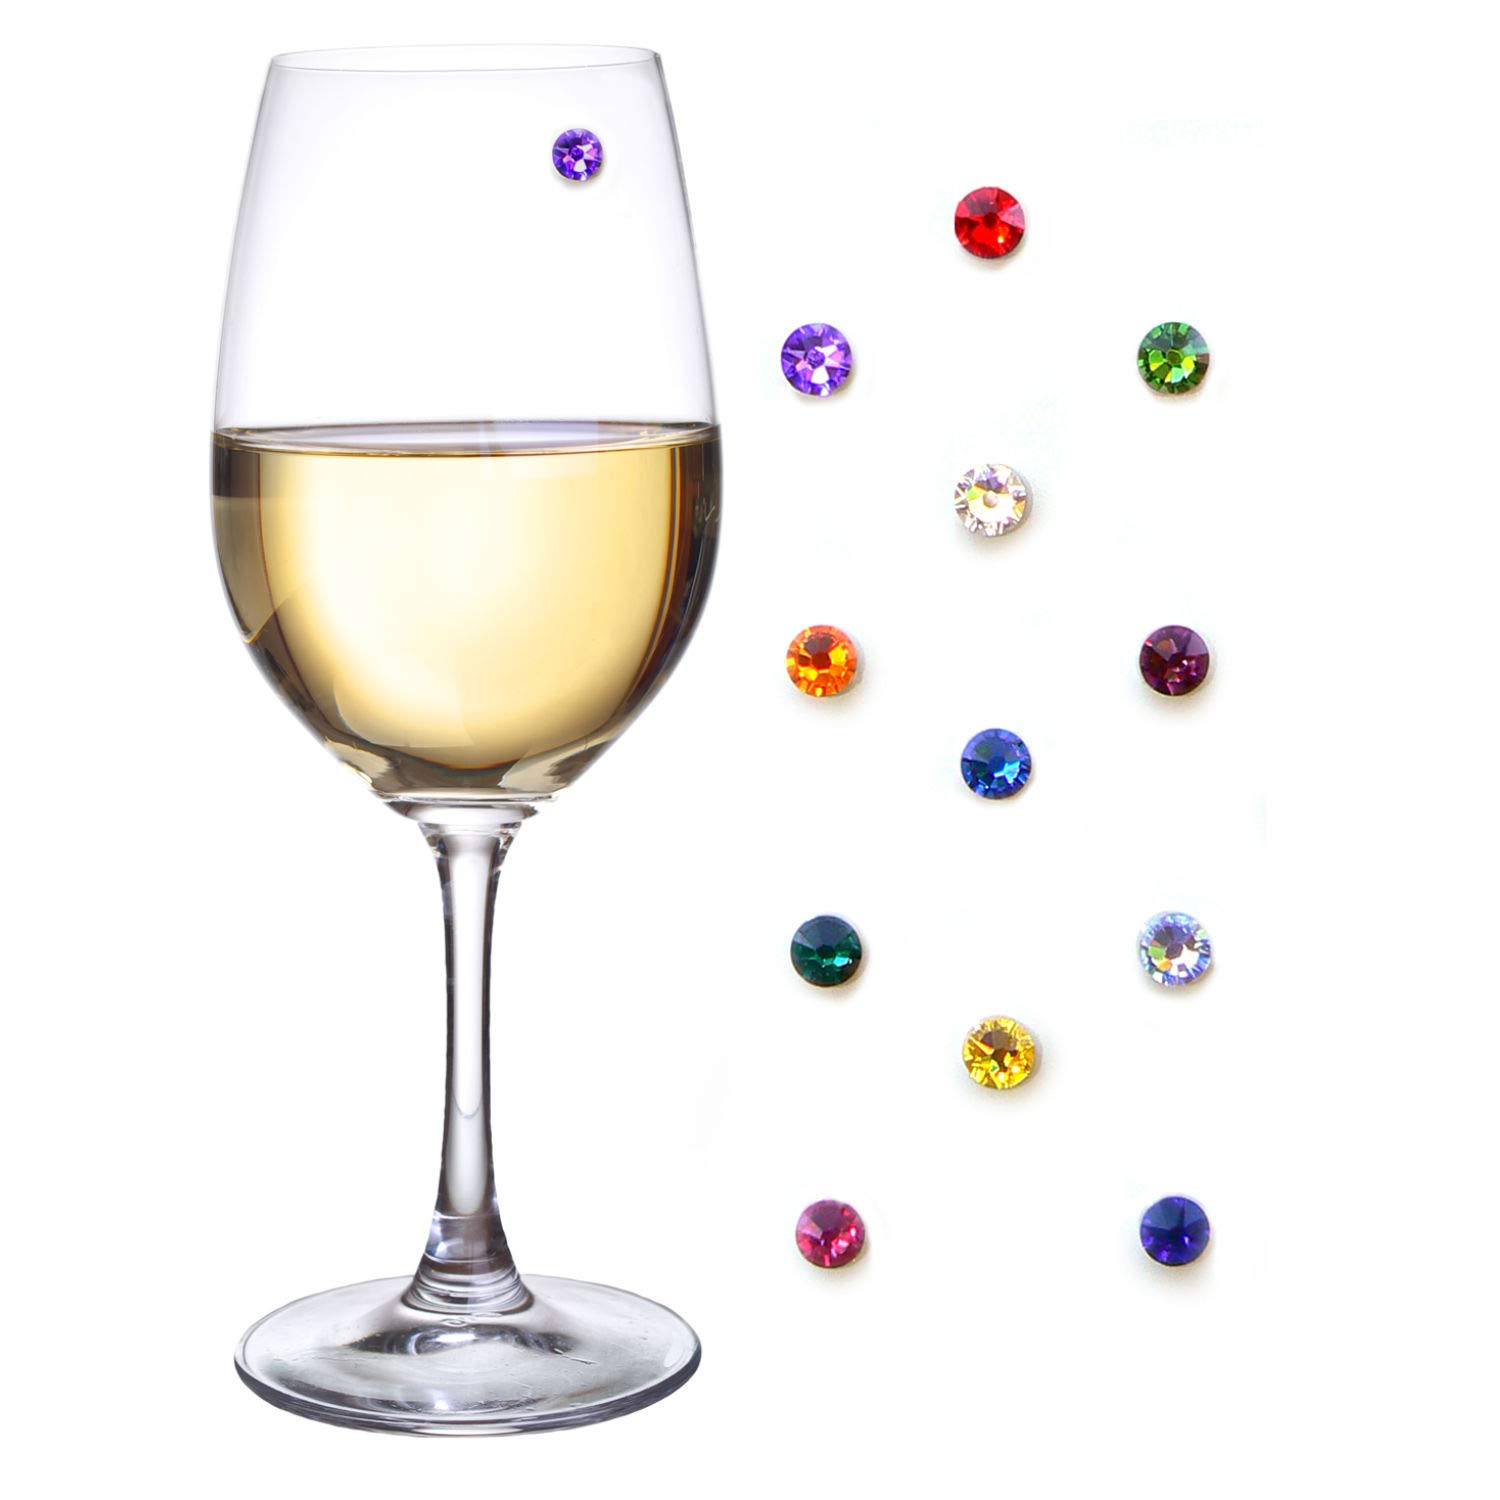 Swarovski Crystal Magnetic Wine Glass Charms Set of 12 Glass Markers that Work on Stemless Glasses - Gift/Storage Box Included by Simply Charmed by Simply Charmed